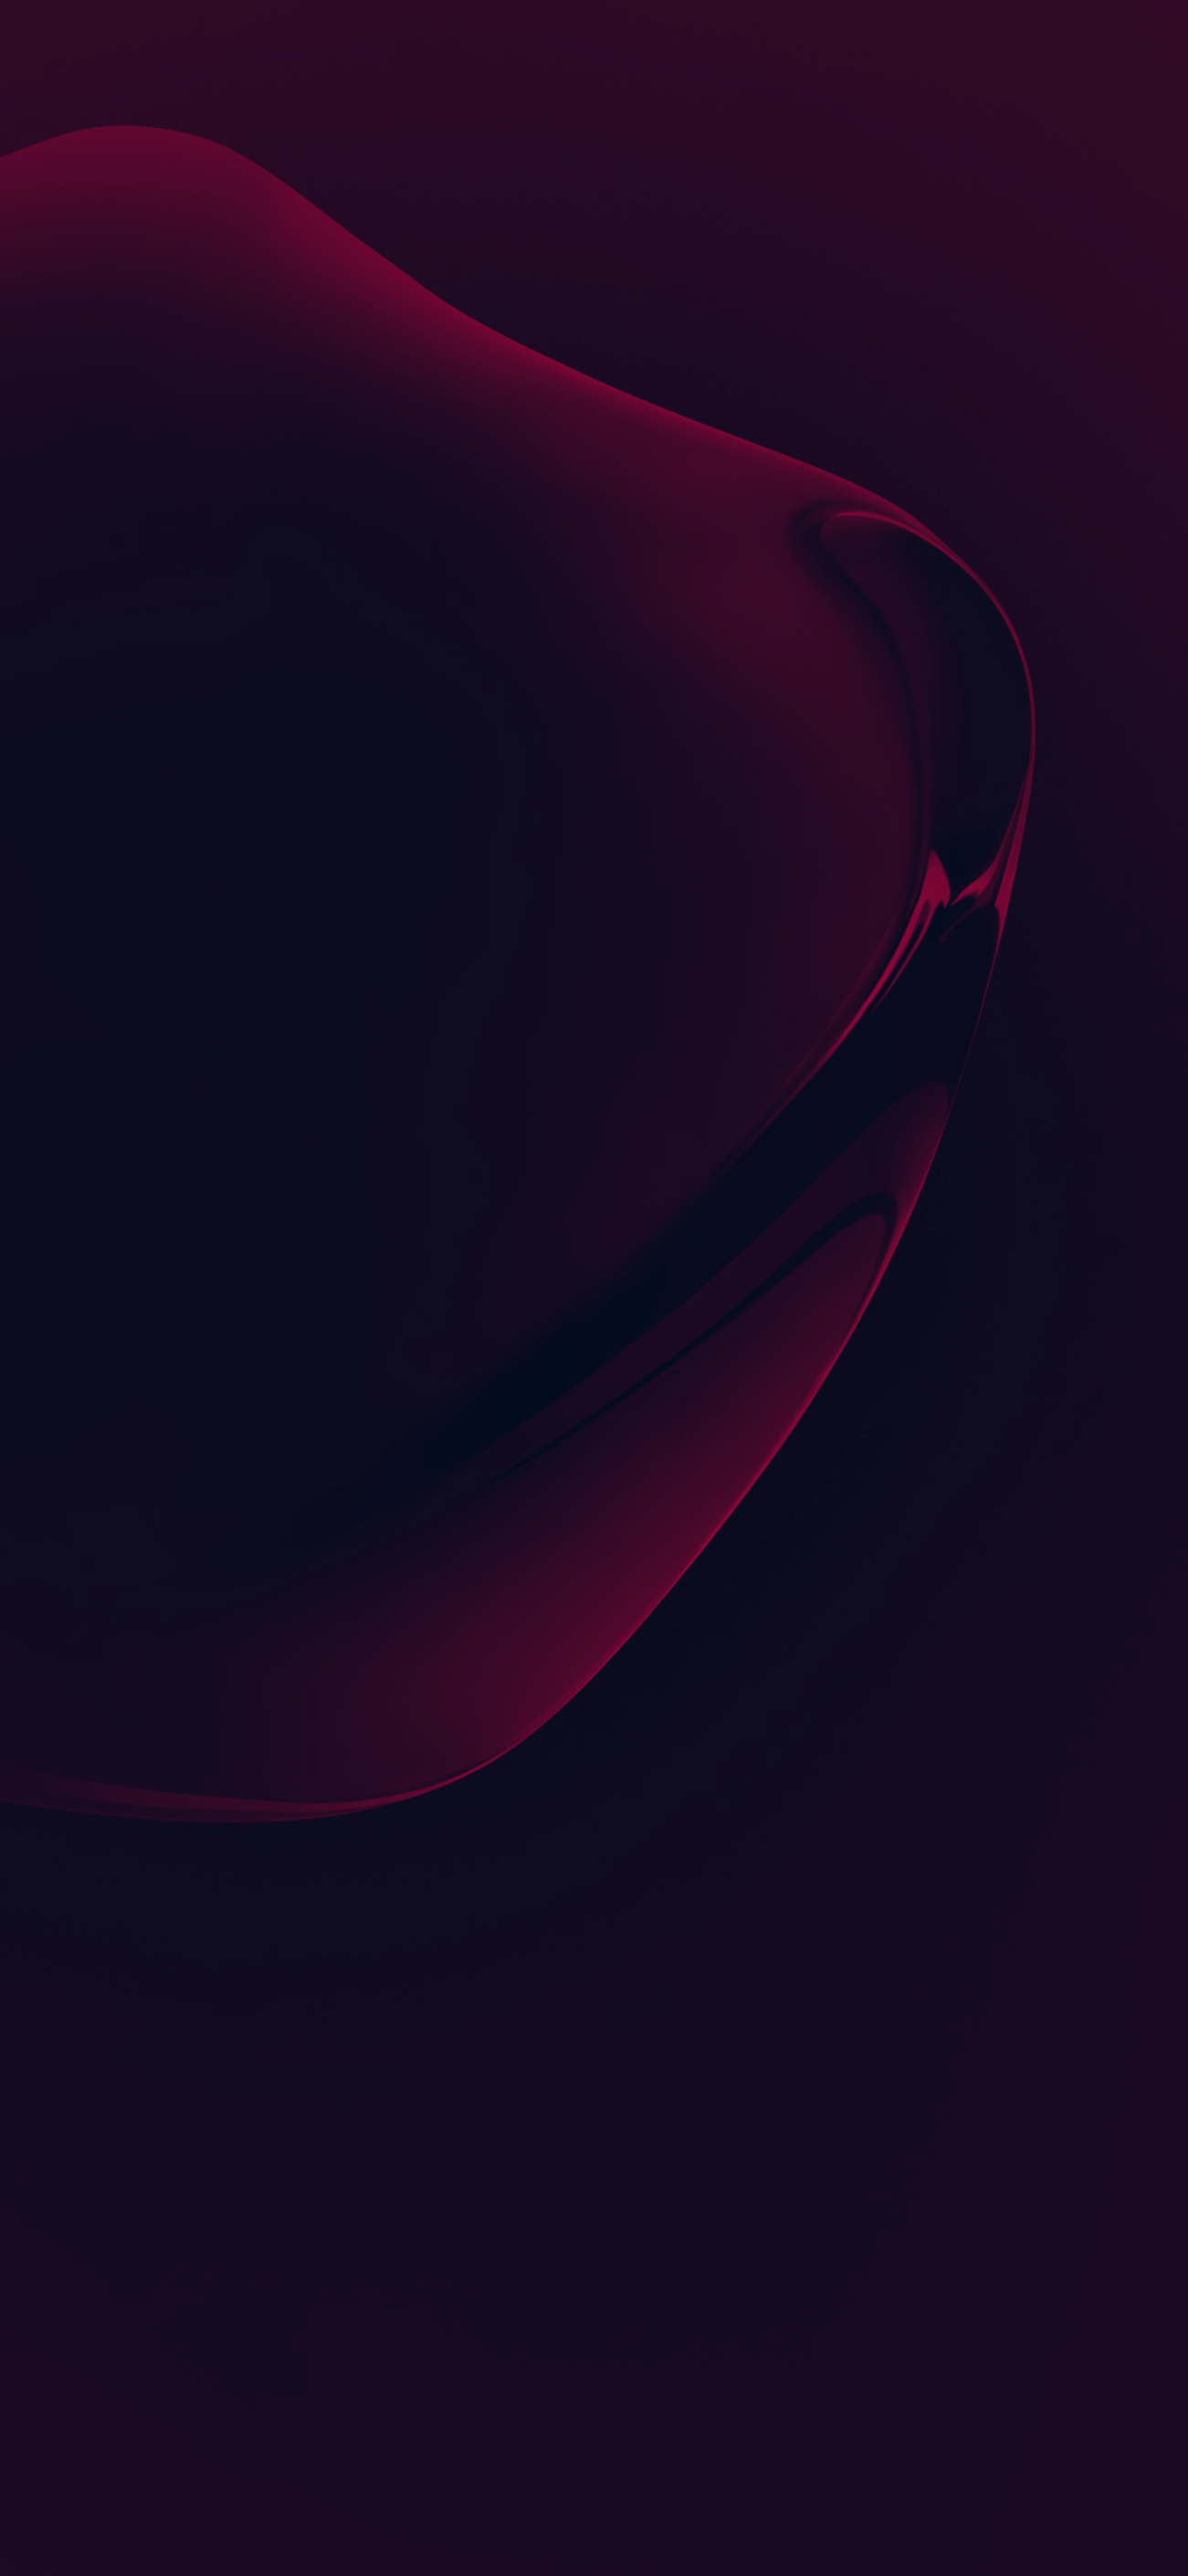 description in 2020 Abstract iphone wallpaper, Color